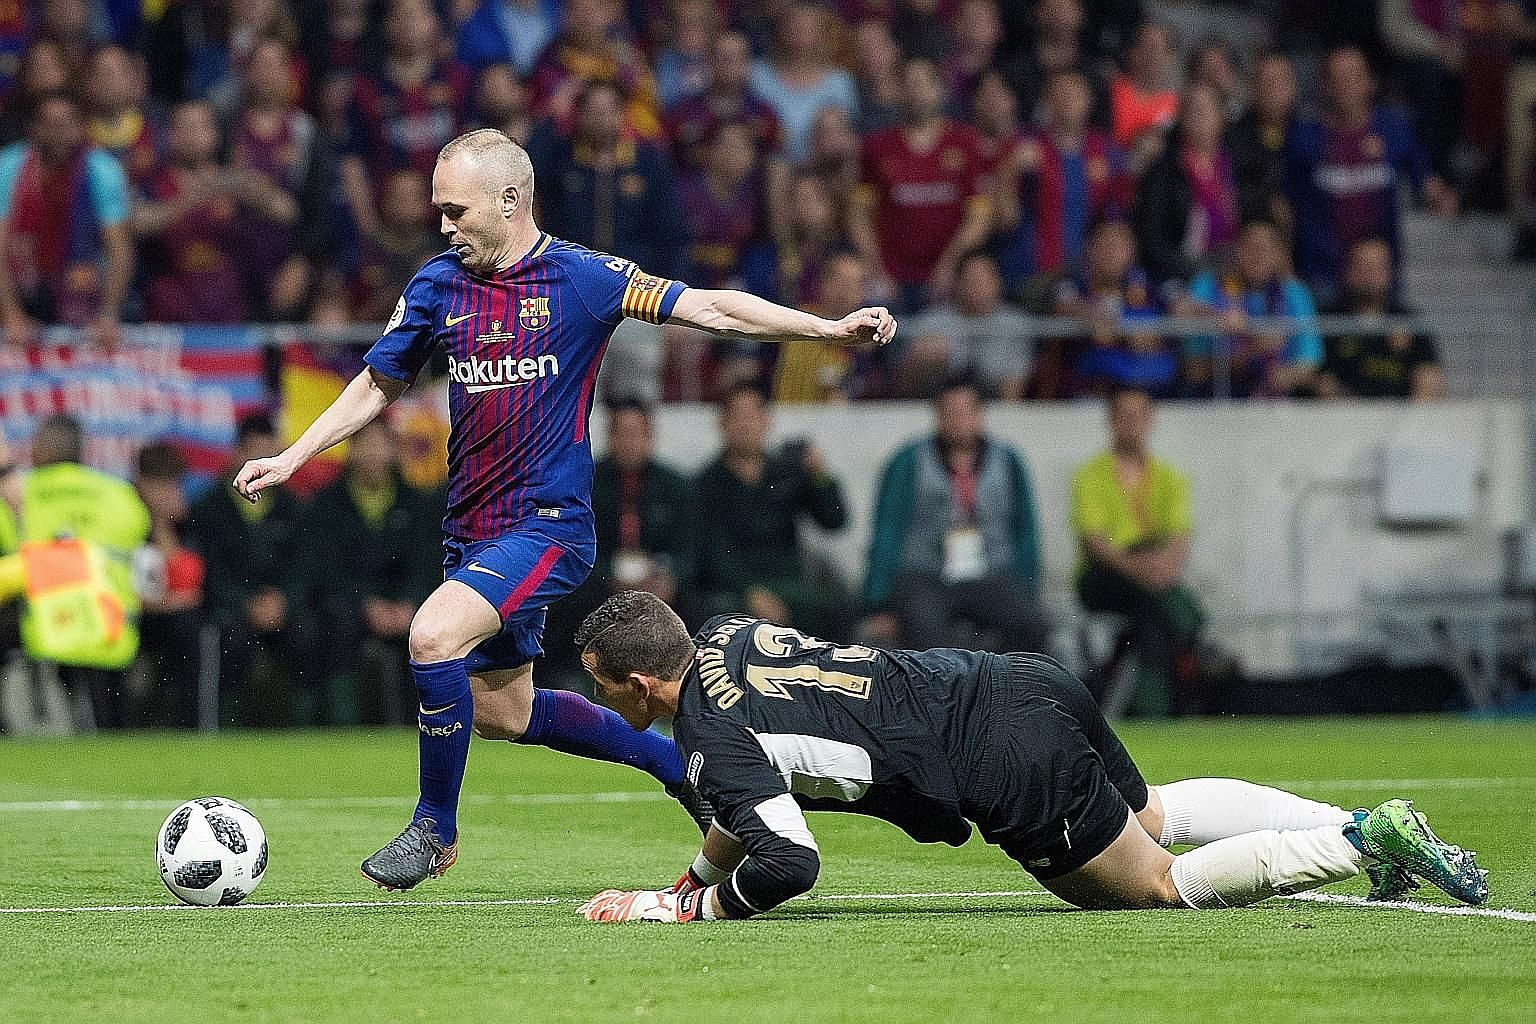 Andres Iniesta rounding Sevilla goalkeeper David Soria to score the fourth goal in Barcelona's 5-0 victory in the King's Cup final in Madrid.